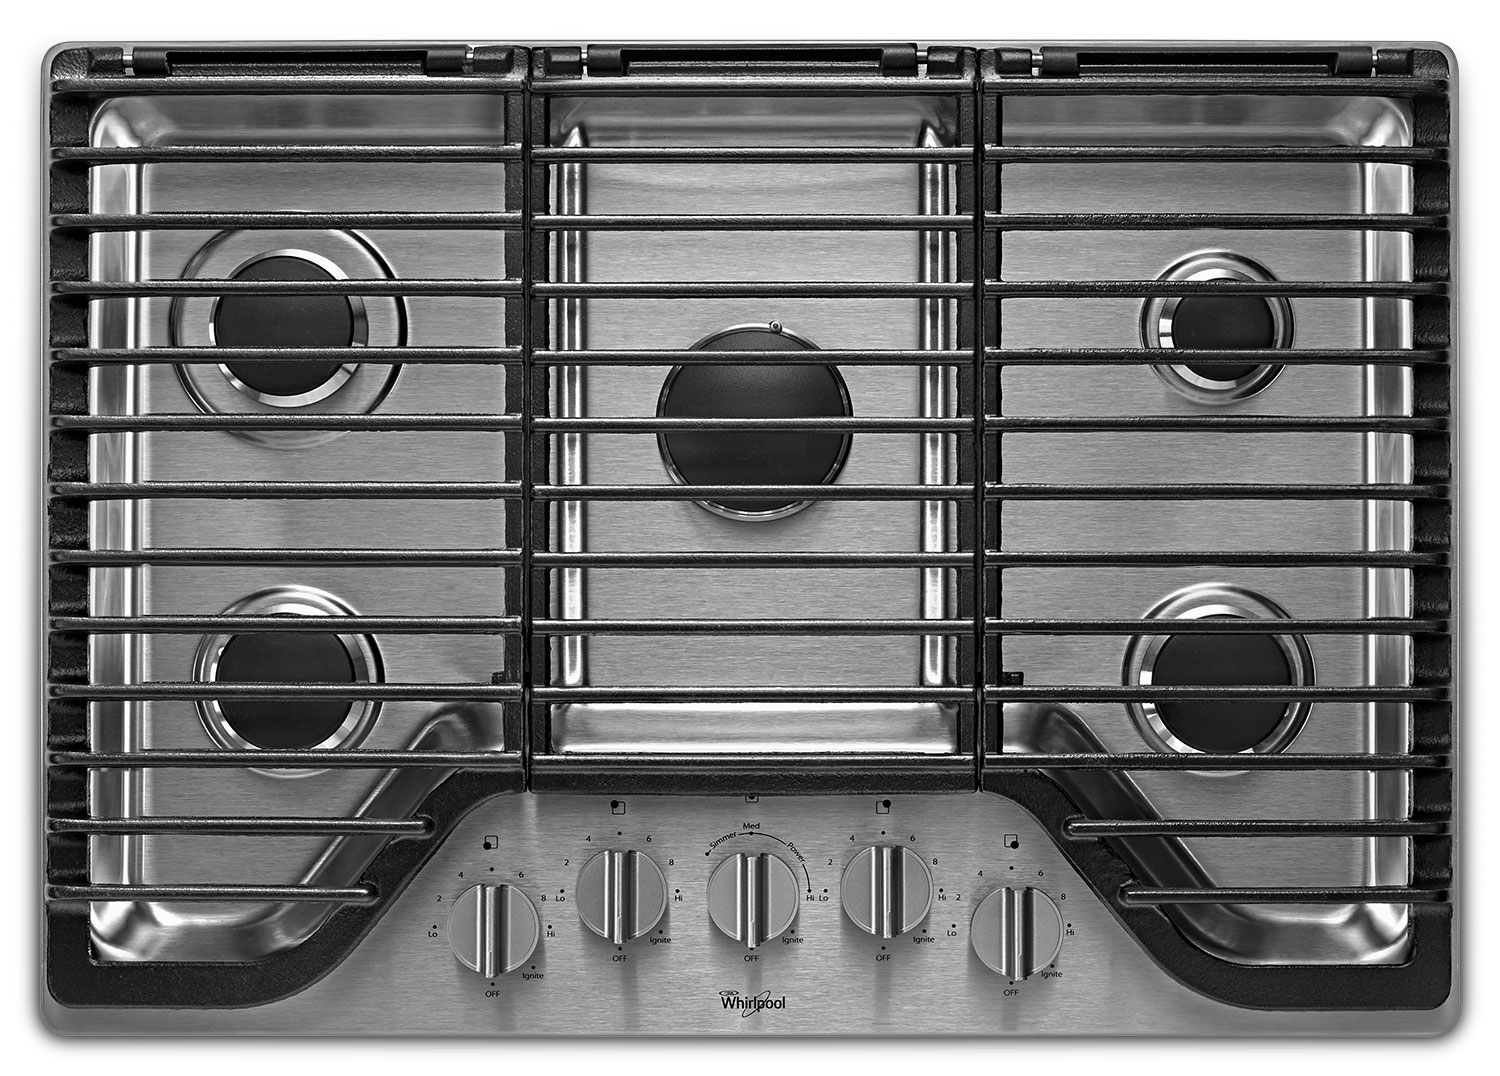 Cooking Products - Whirlpool® 30-inch 5 Burner Gas Cooktop with EZ-2-Lift™ Hinged Cast-Iron Grates